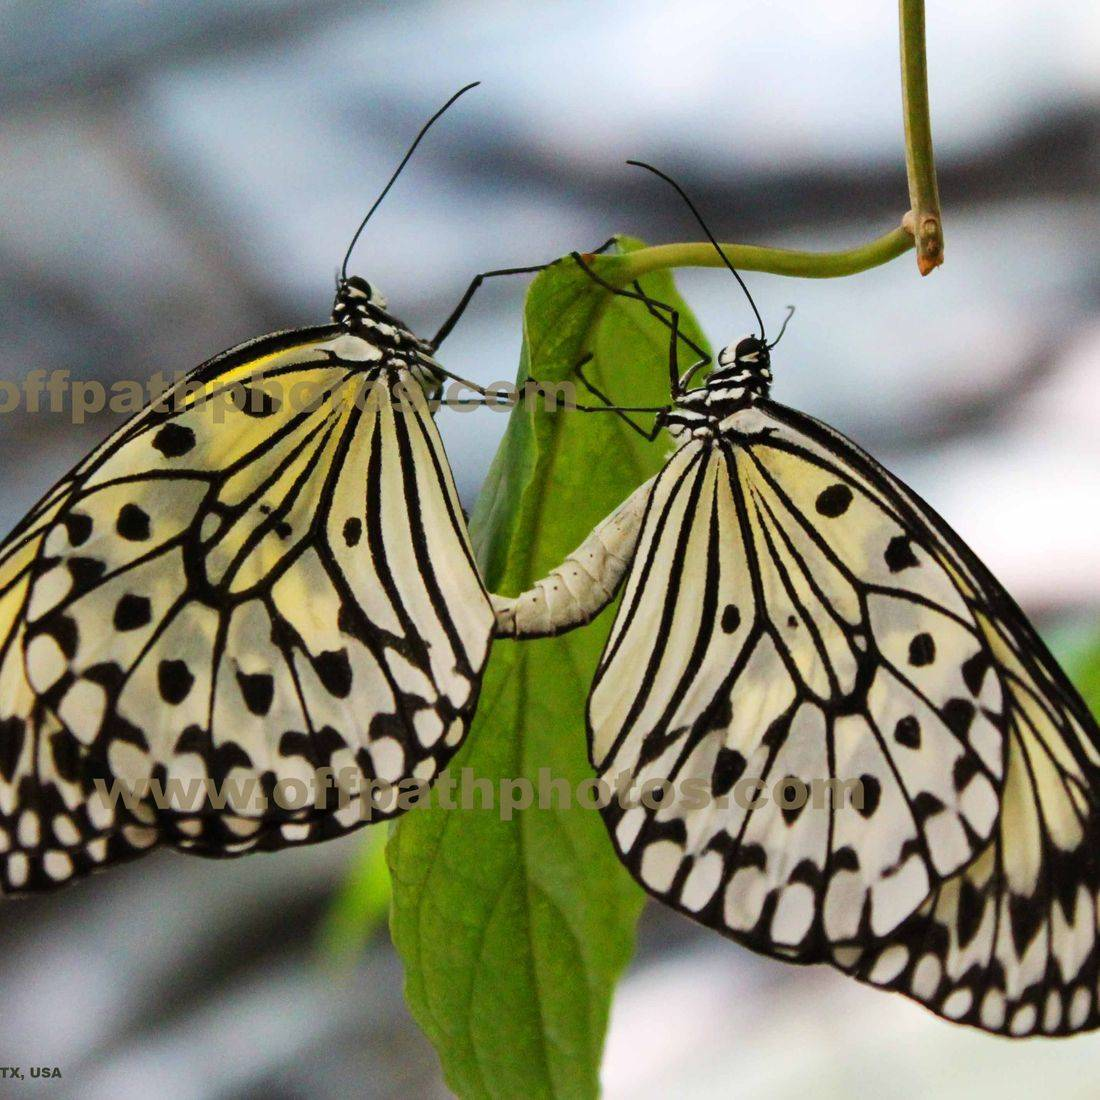 photography, nature, animals, butterflies, mating, zoo, summer, insects that fly,